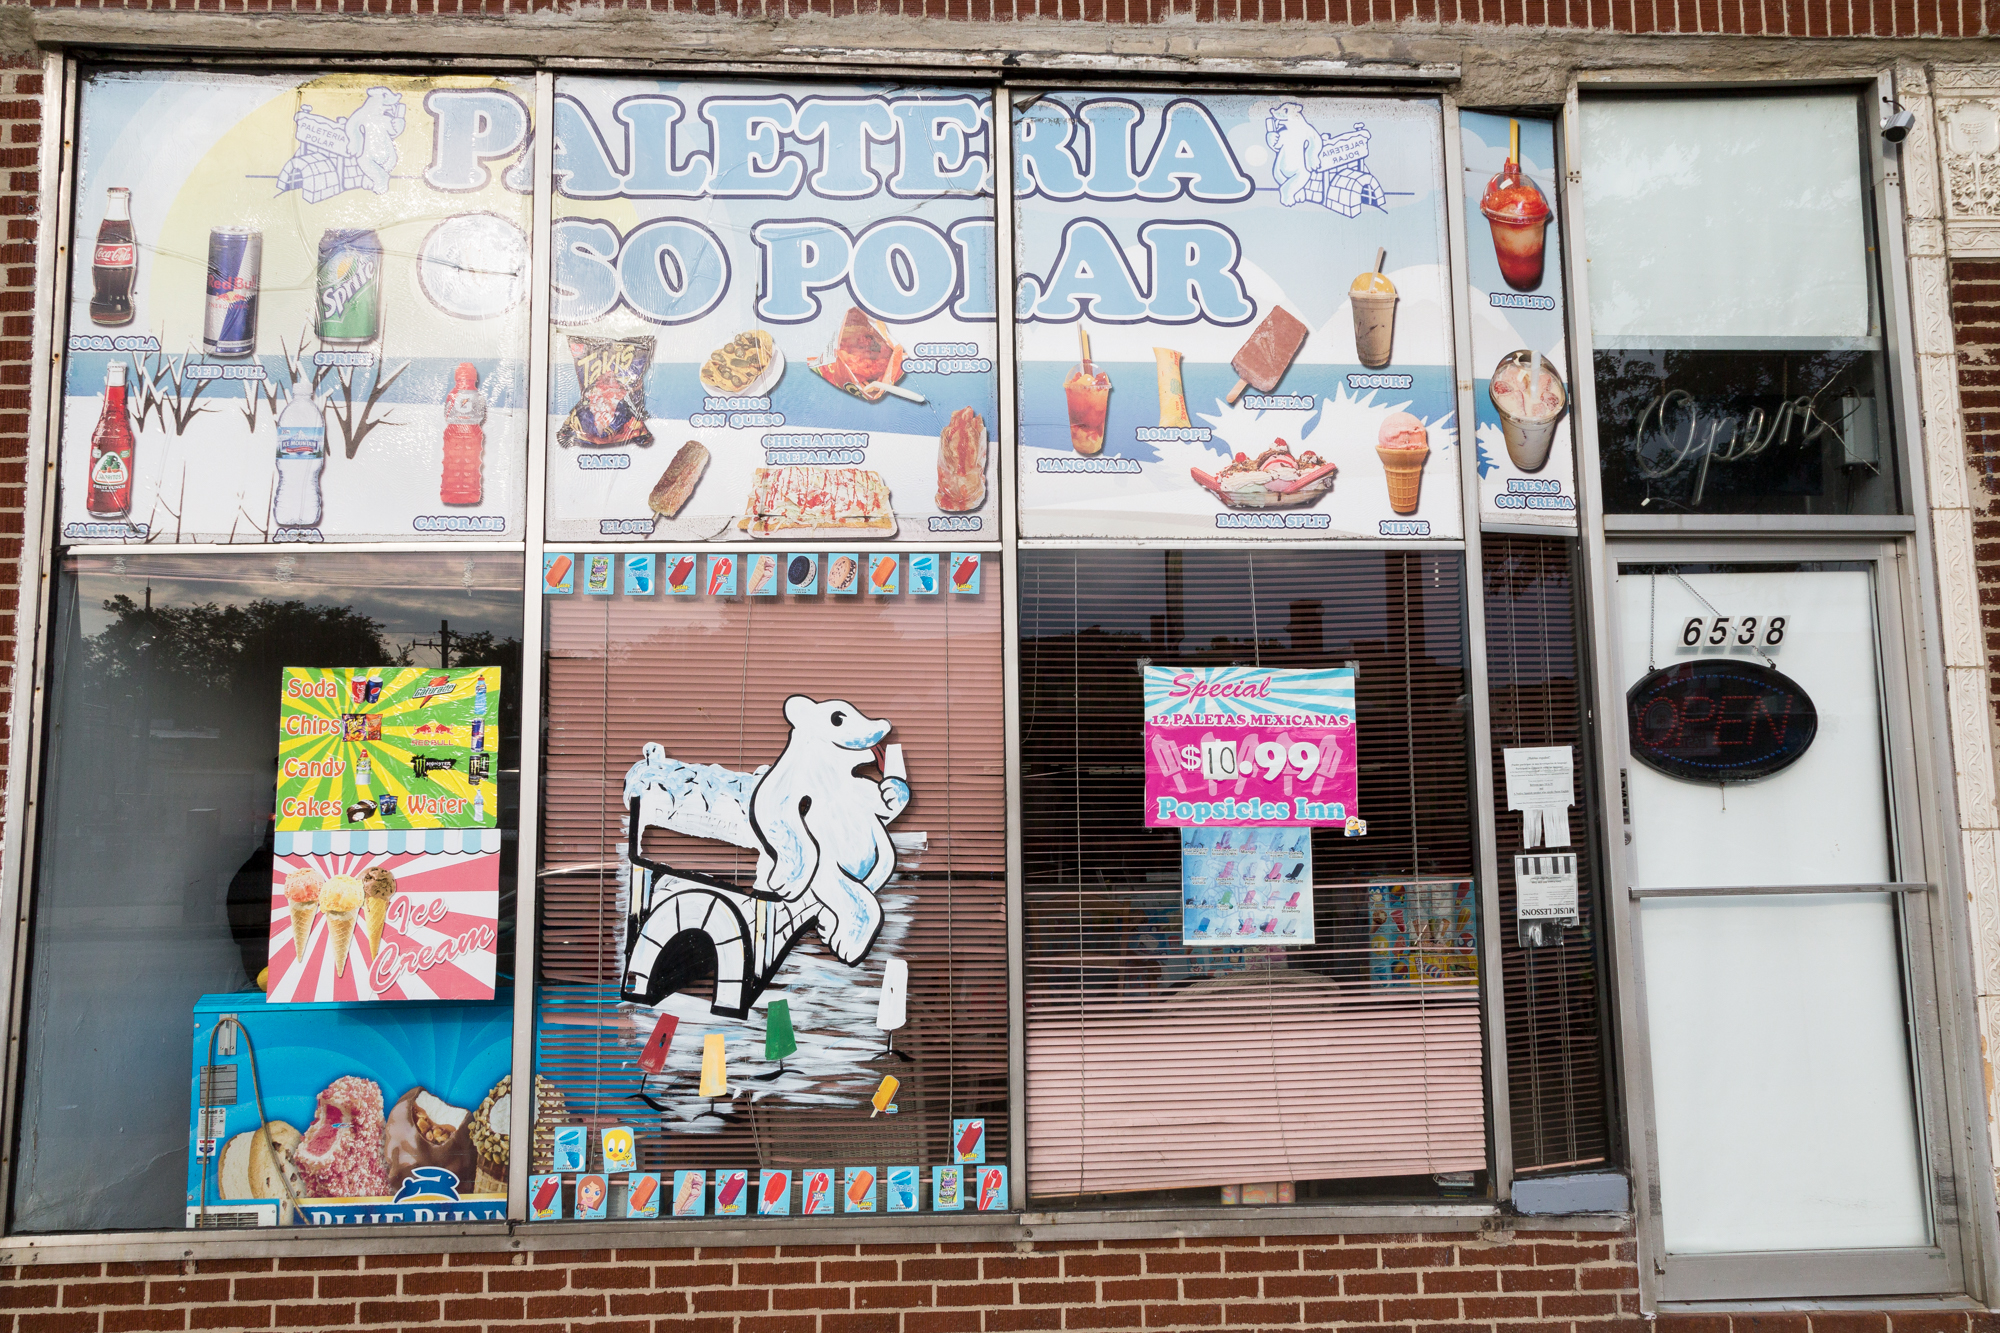 Colorful posters and stickers cover the exterior of La Polar's Clark Street storefront. (WBEZ/Shawn Allee)